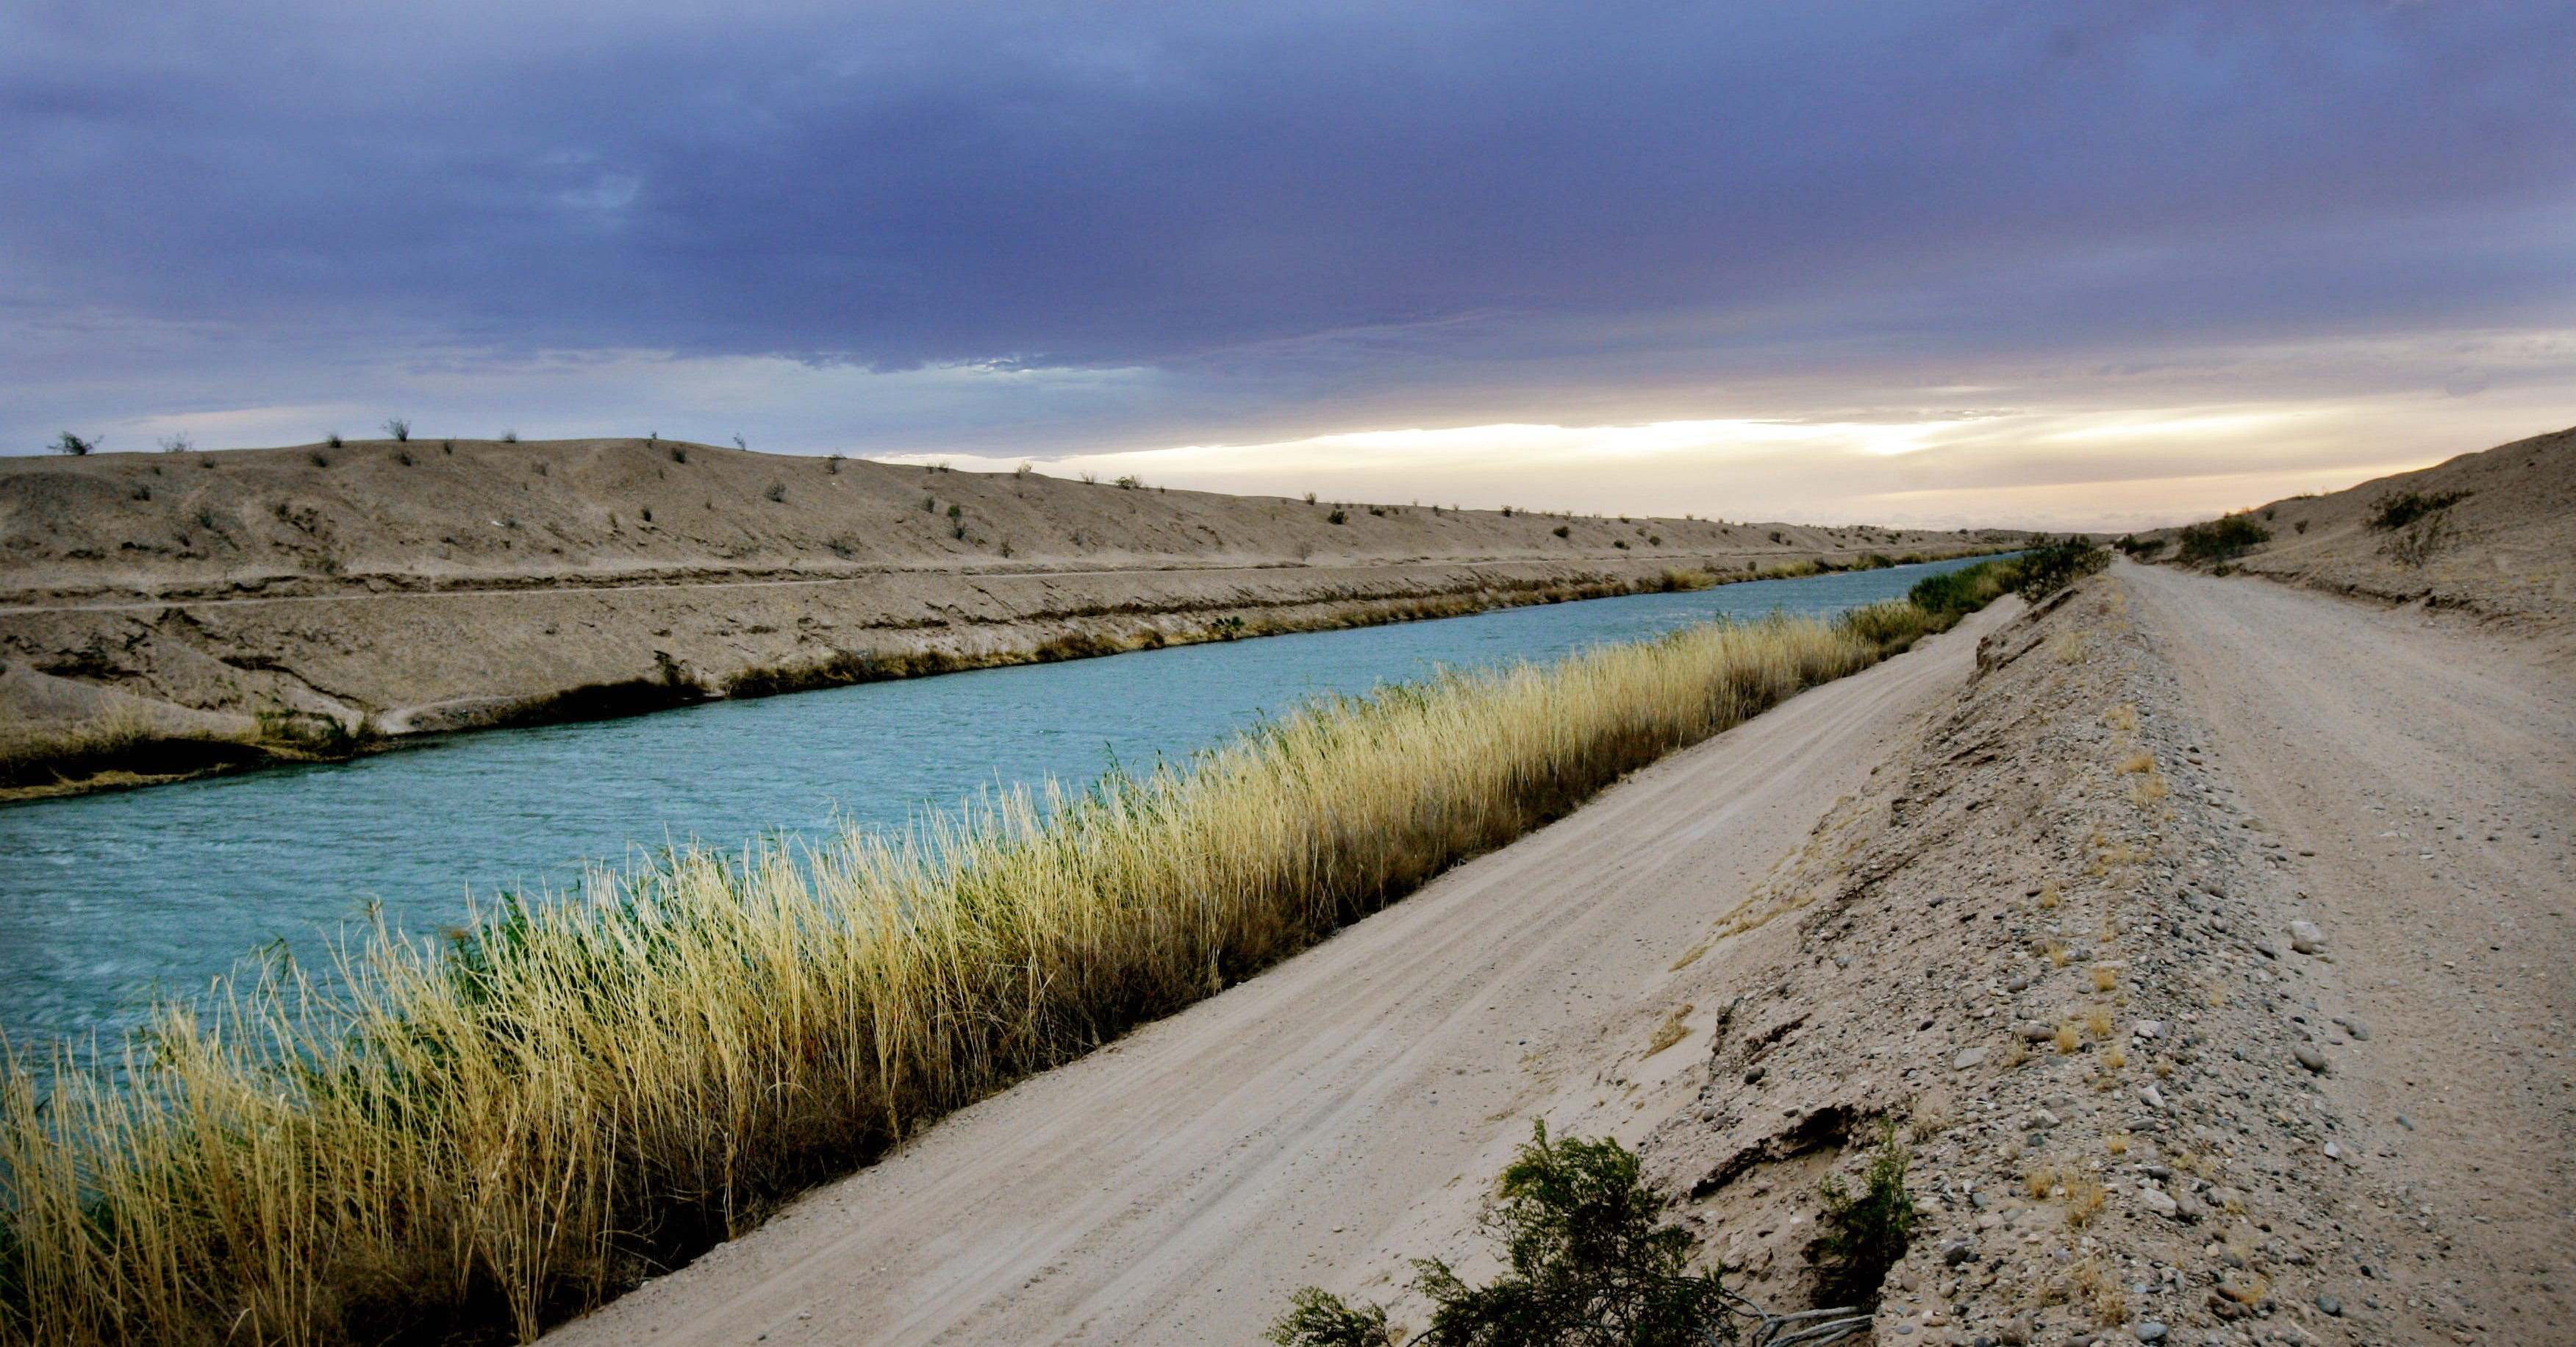 A view of the All-American Canal near Yuma, Arizona, on Feb. 28, 2006, before it was lined with concrete.